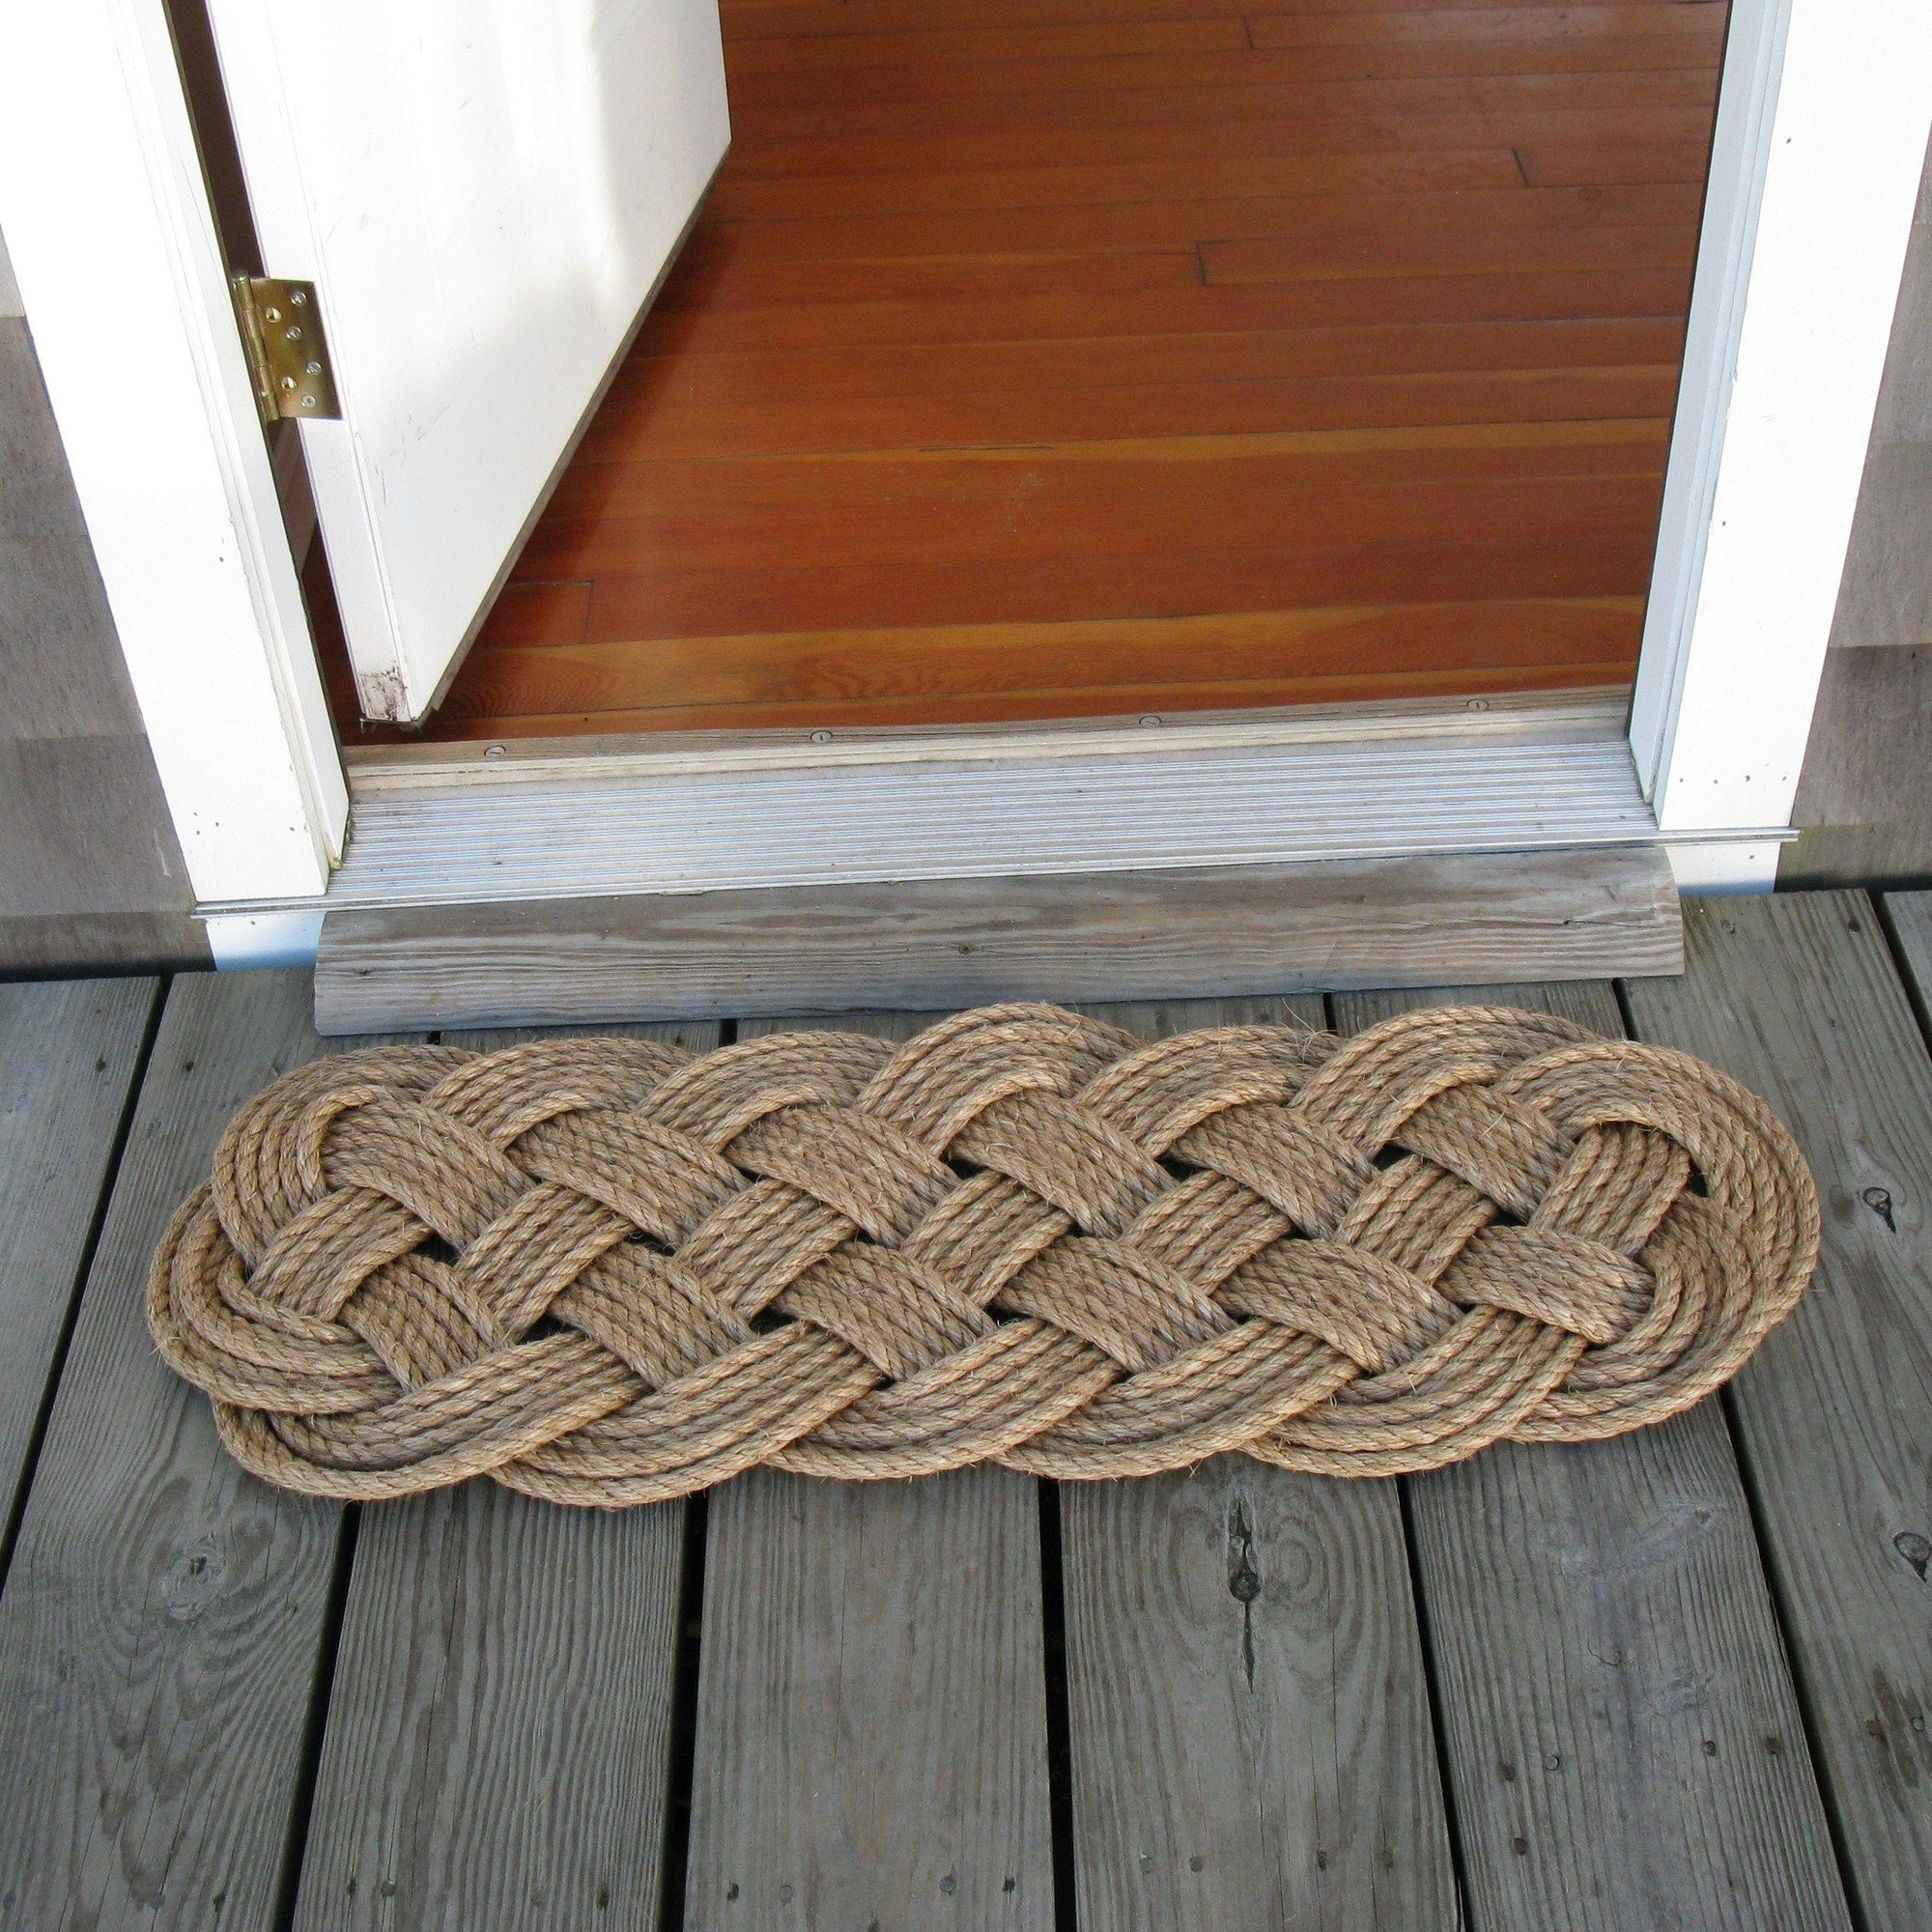 Nautical Knot Door Mat, Prolong Knot handmade at Mystic Knotwork